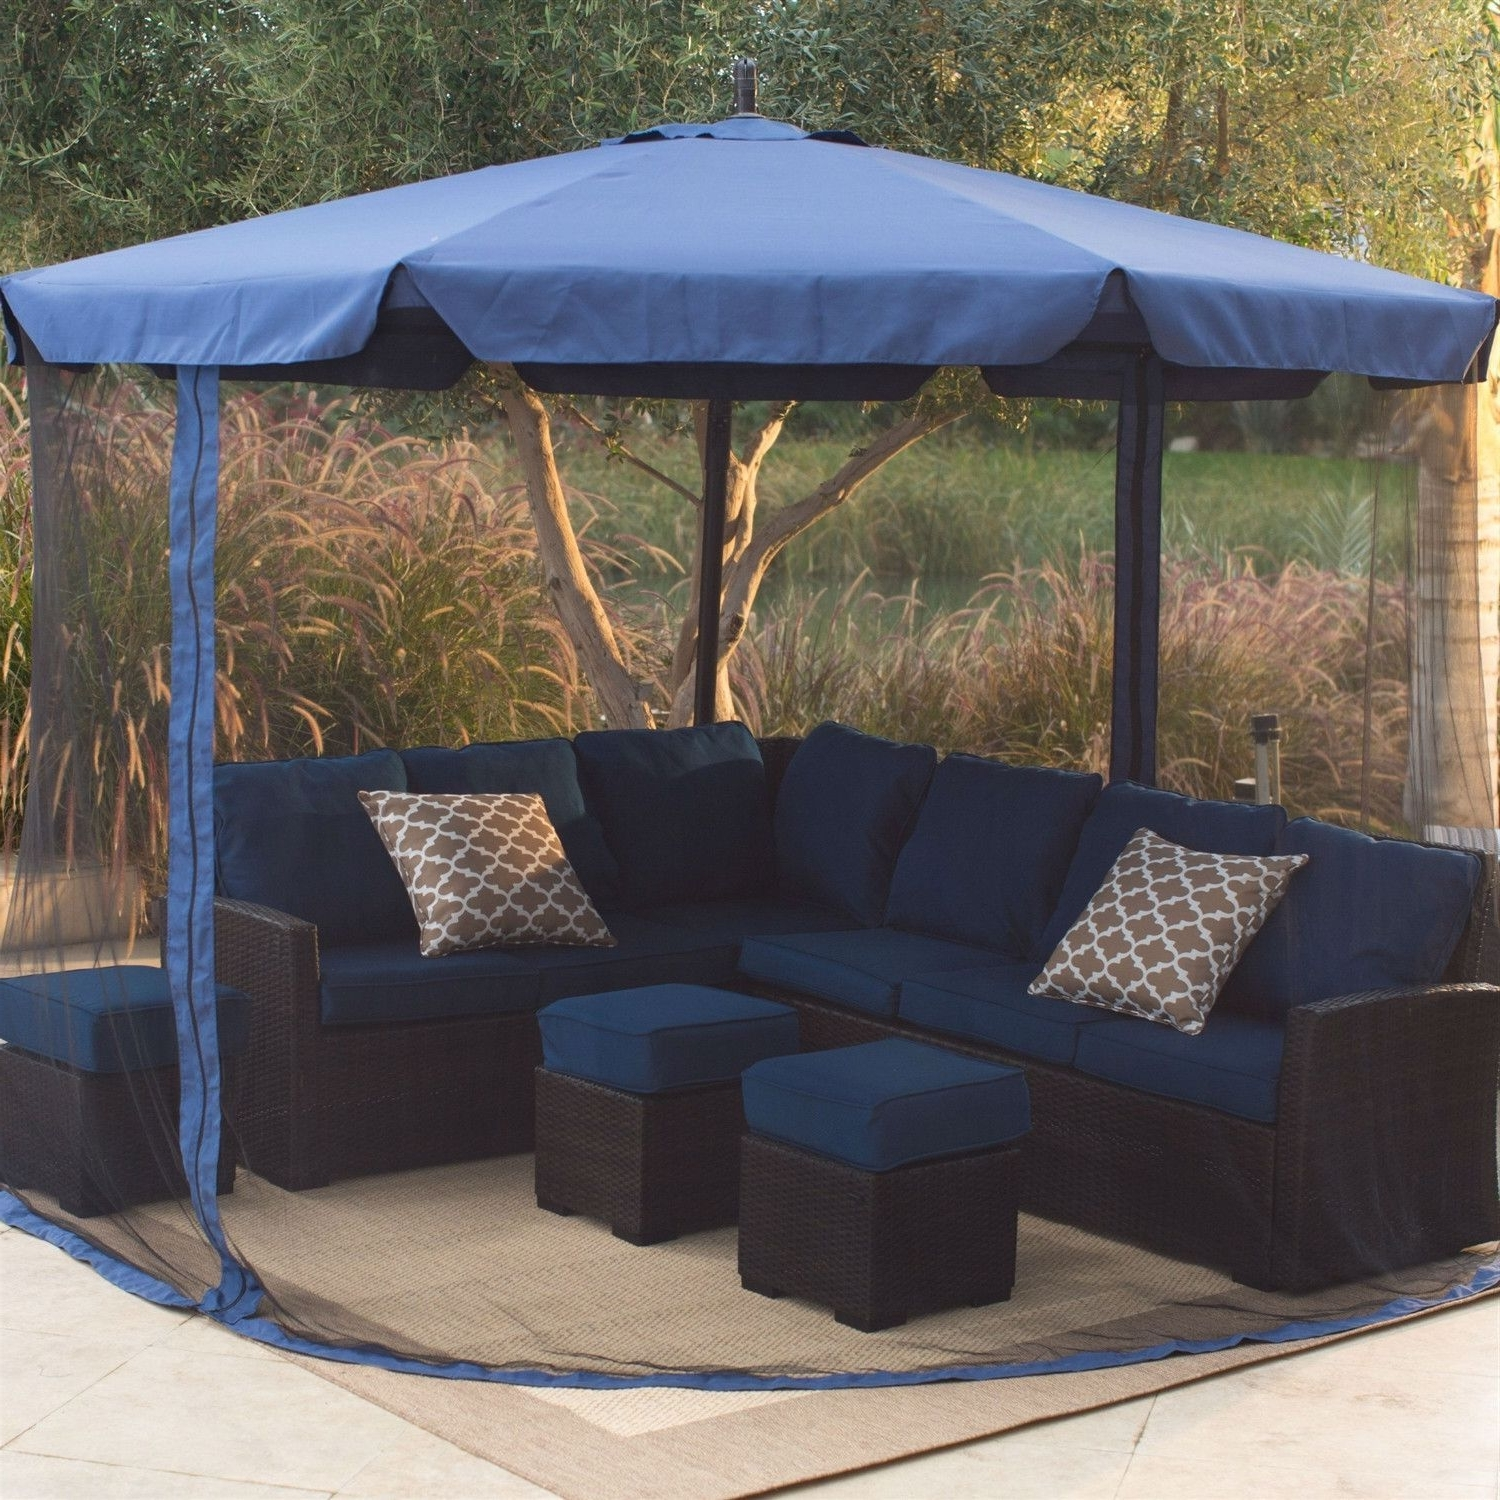 2019 11 Ft Cantilever Crank Lift Patio Umbrella In Blue With Removable In 11 Ft Patio Umbrellas (View 6 of 20)